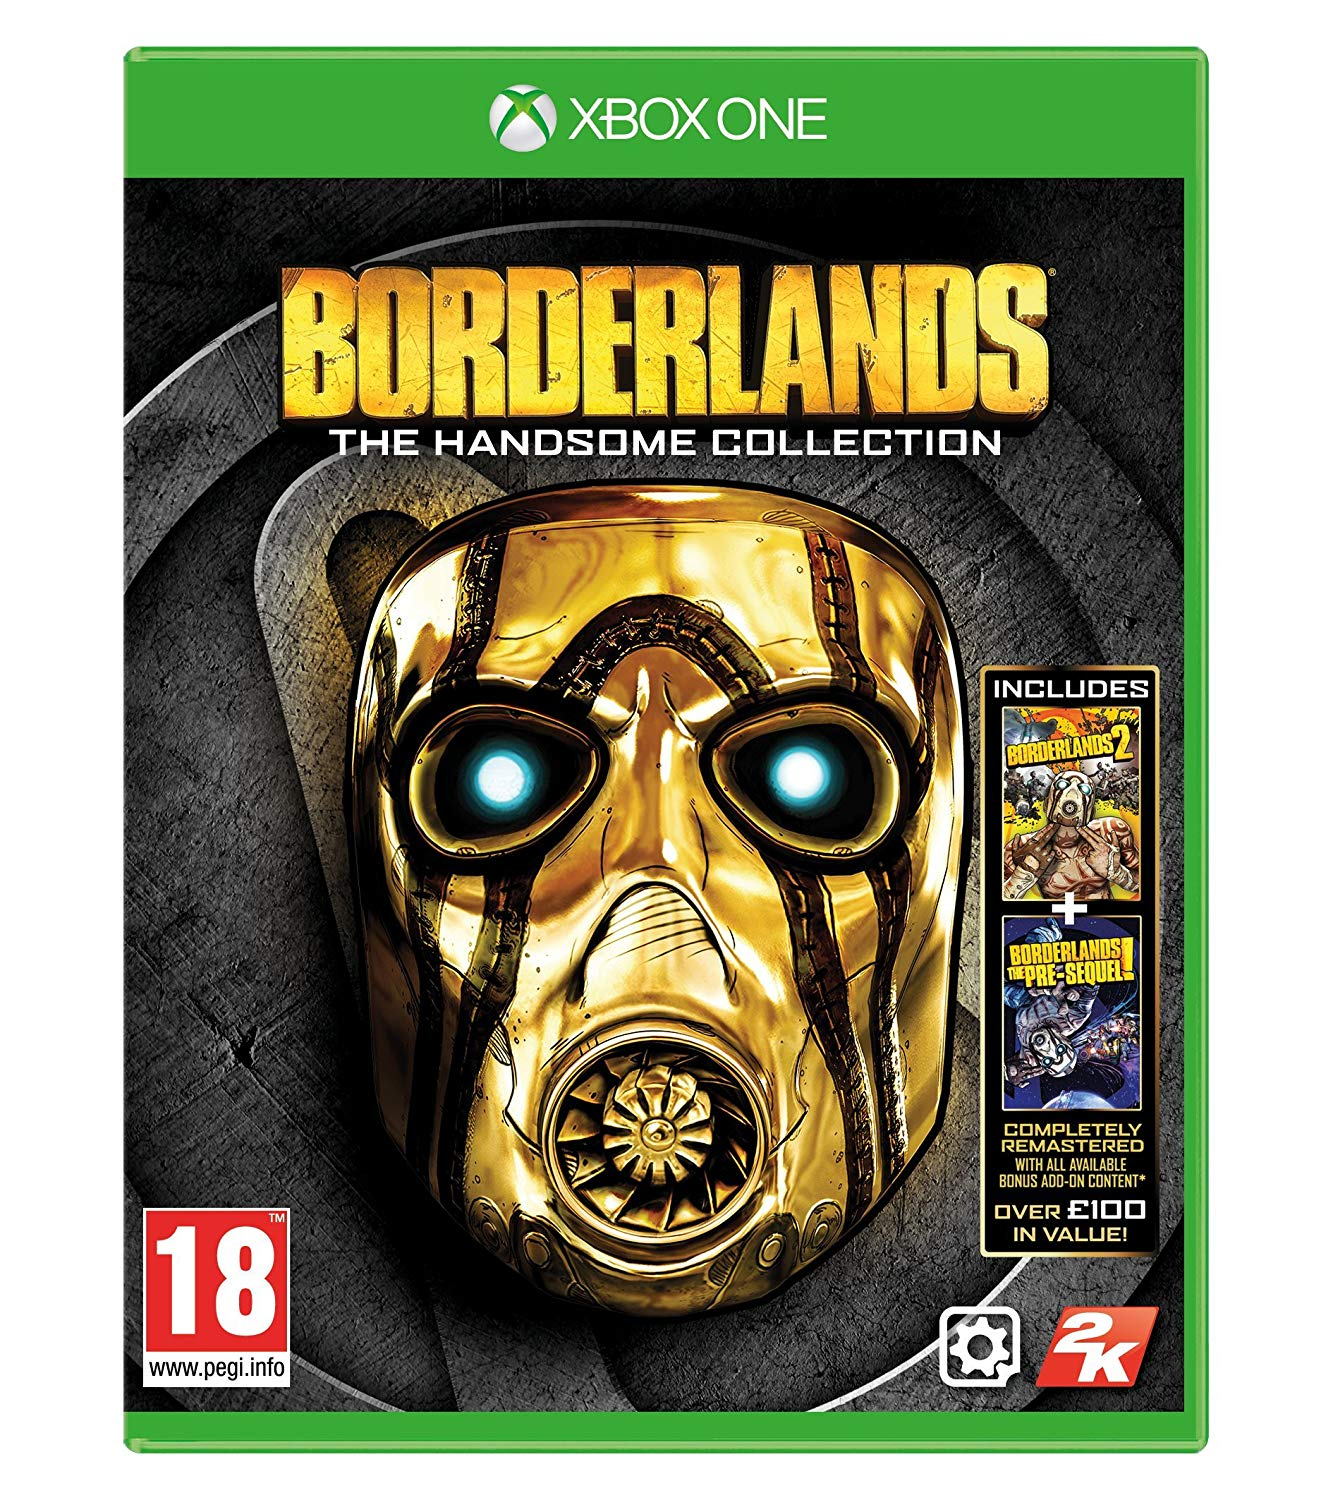 Borderlands: The Handsome Collection Xbox One, XBOX ONE, DVDMEGASTORE, DVDMEGASTORE